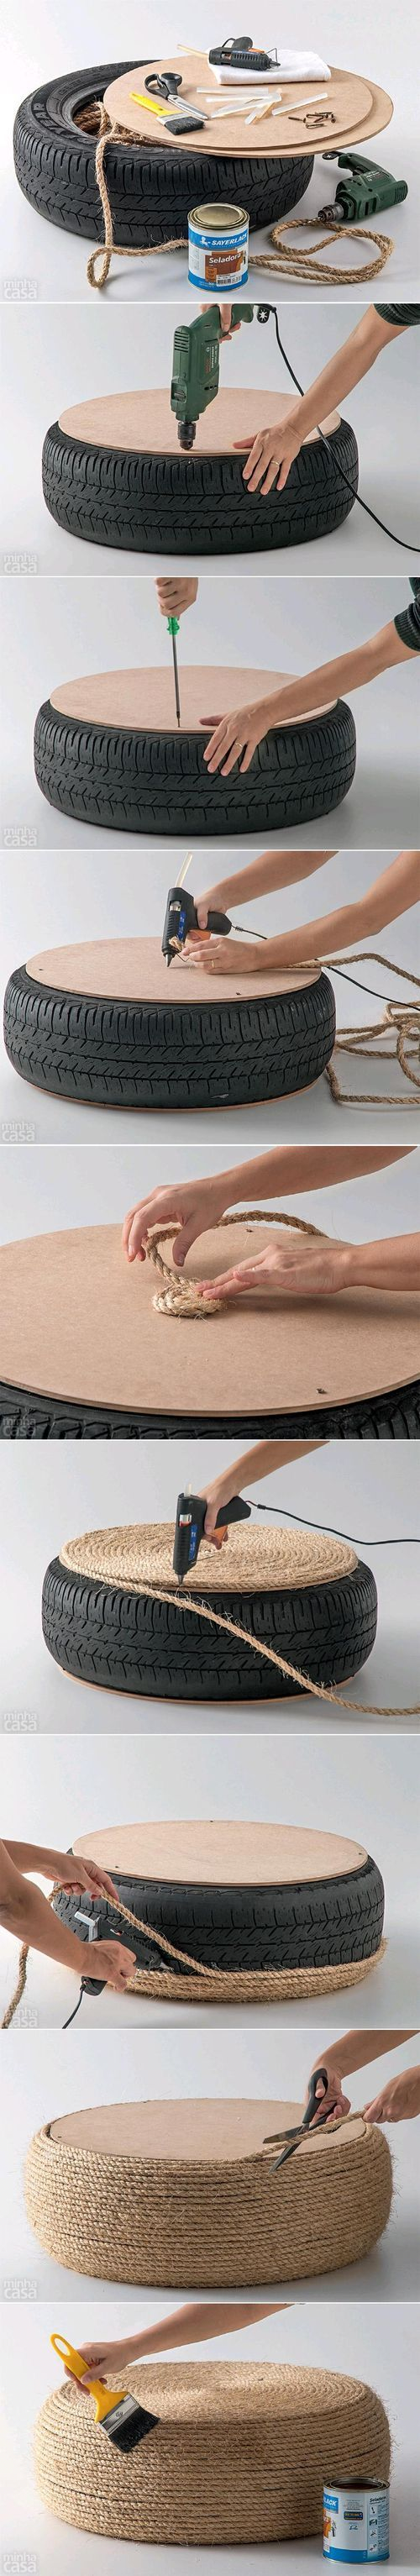 Tire Ottoman - add 4 ball style feet to finish it off